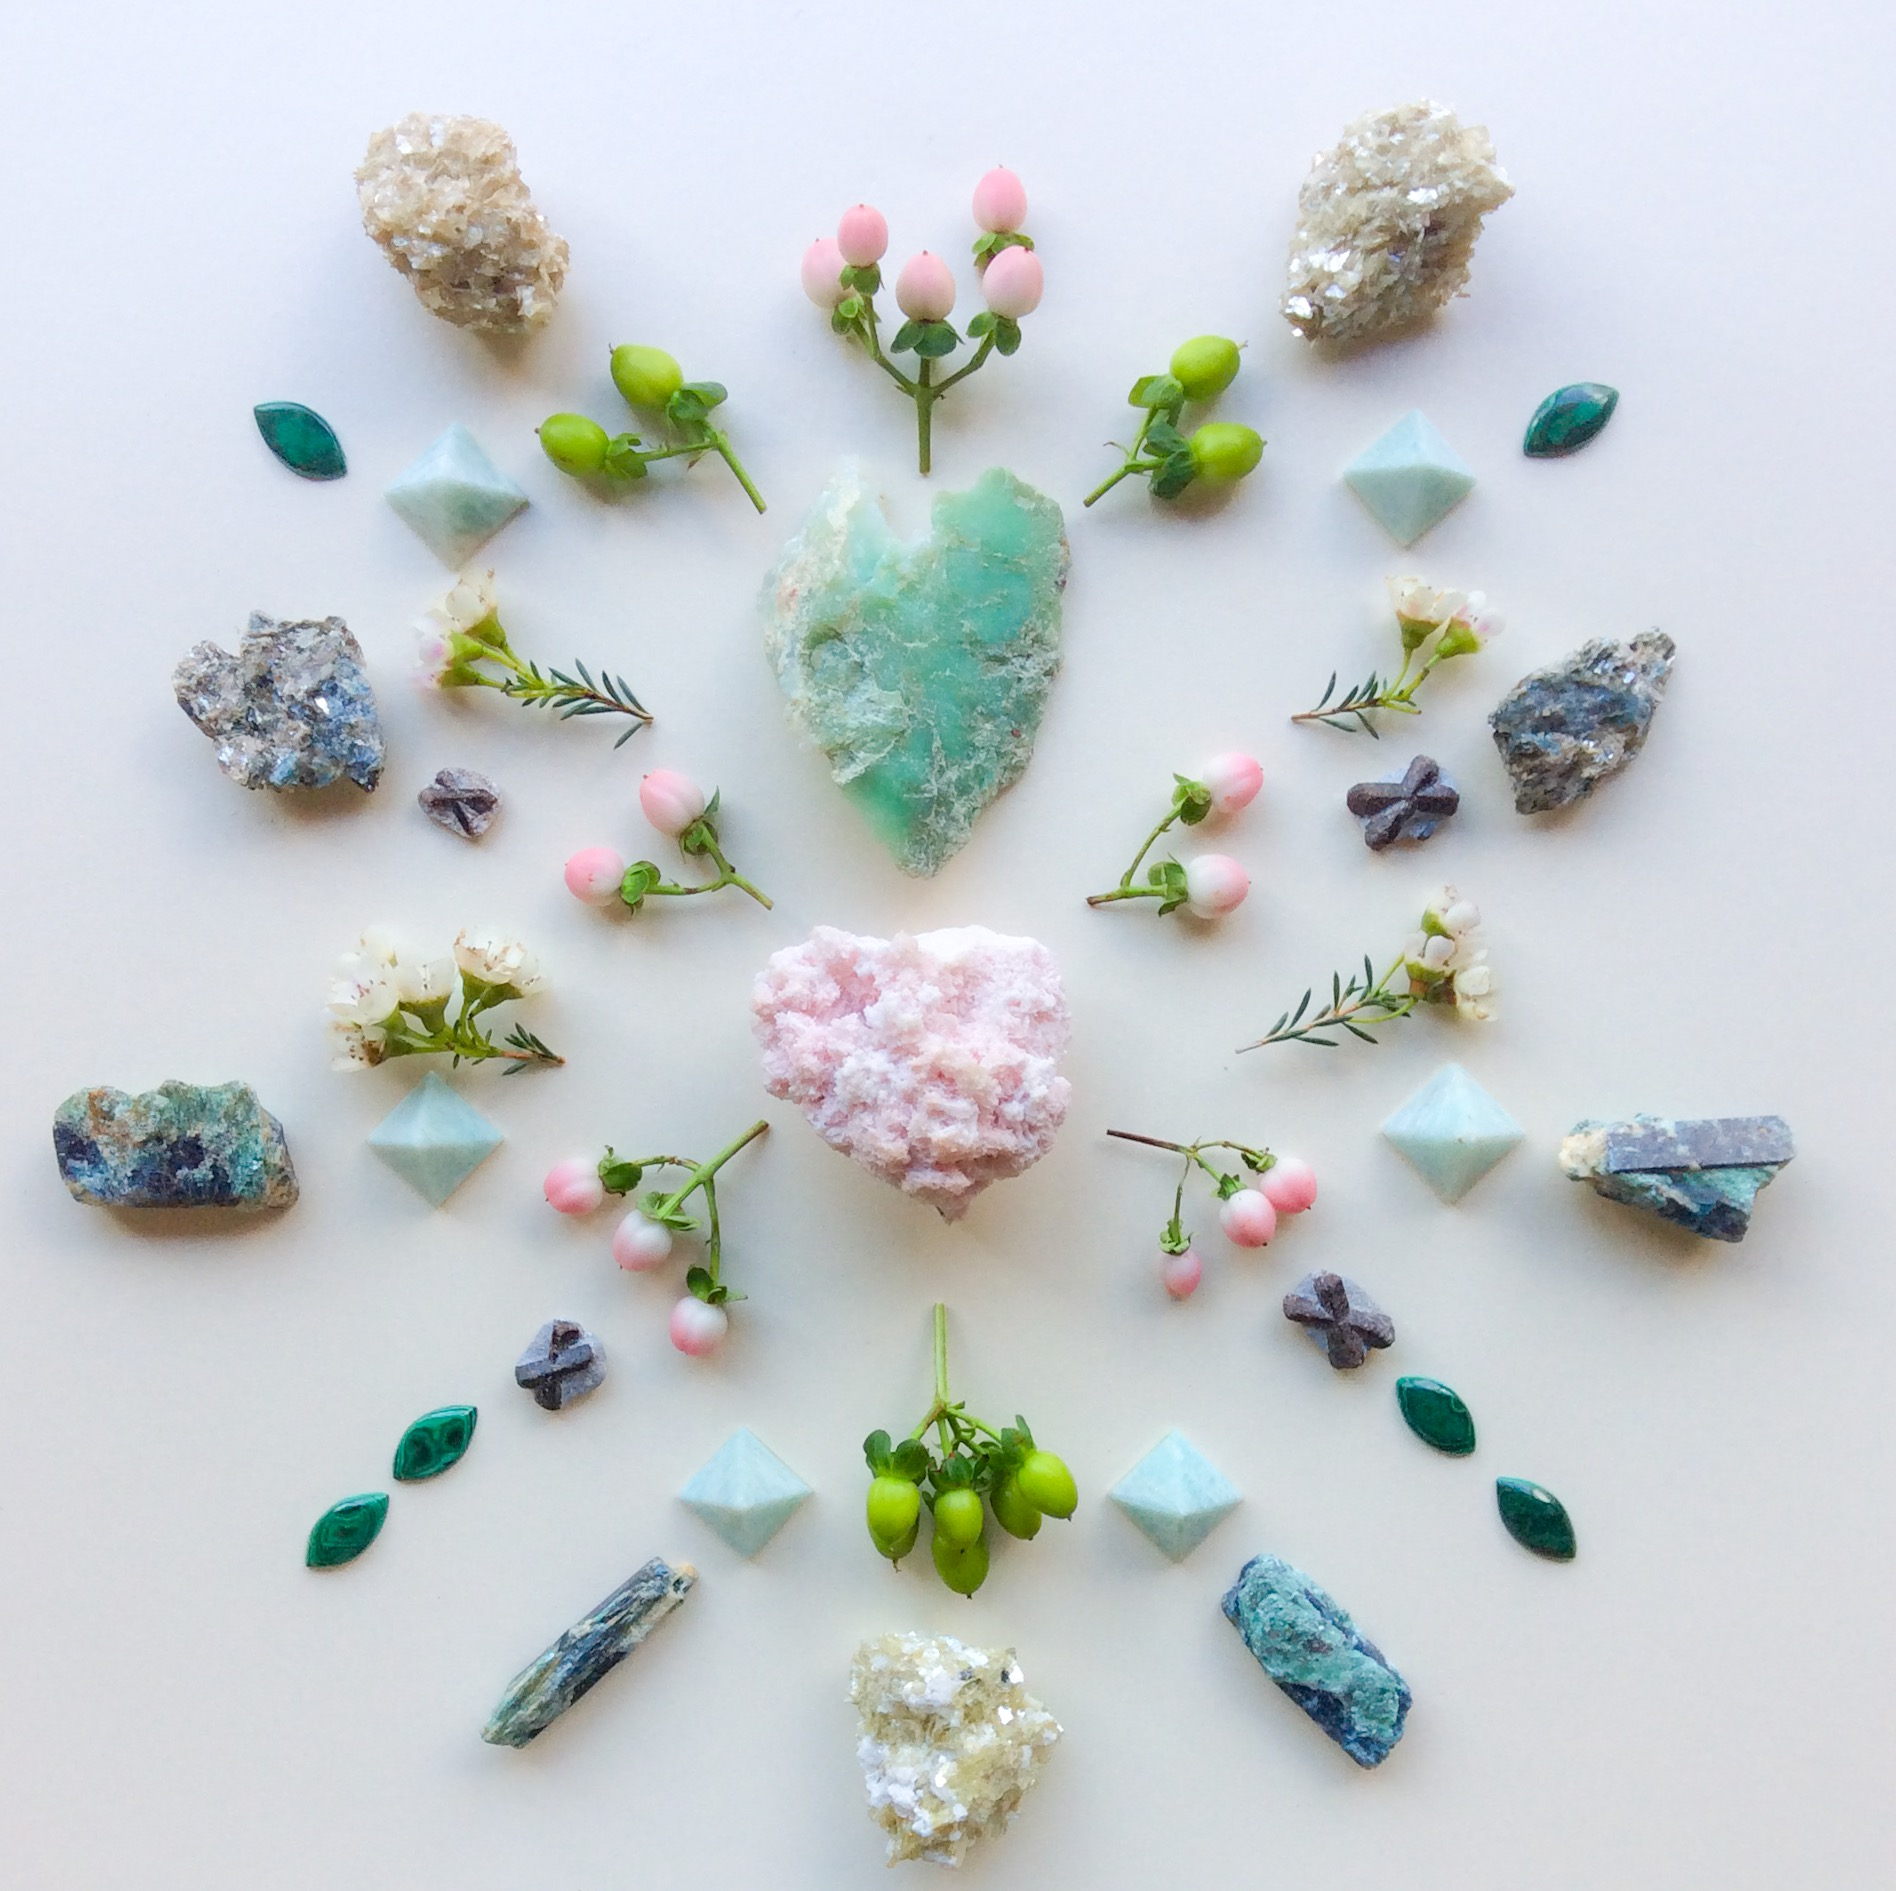 Rodochrosite, Chrysoprase, Staurolite, Sapphirine, Fuchsite with Kyanite, Star Muscovite, Amazonite, Malachite, Wax flowers and Hypericum